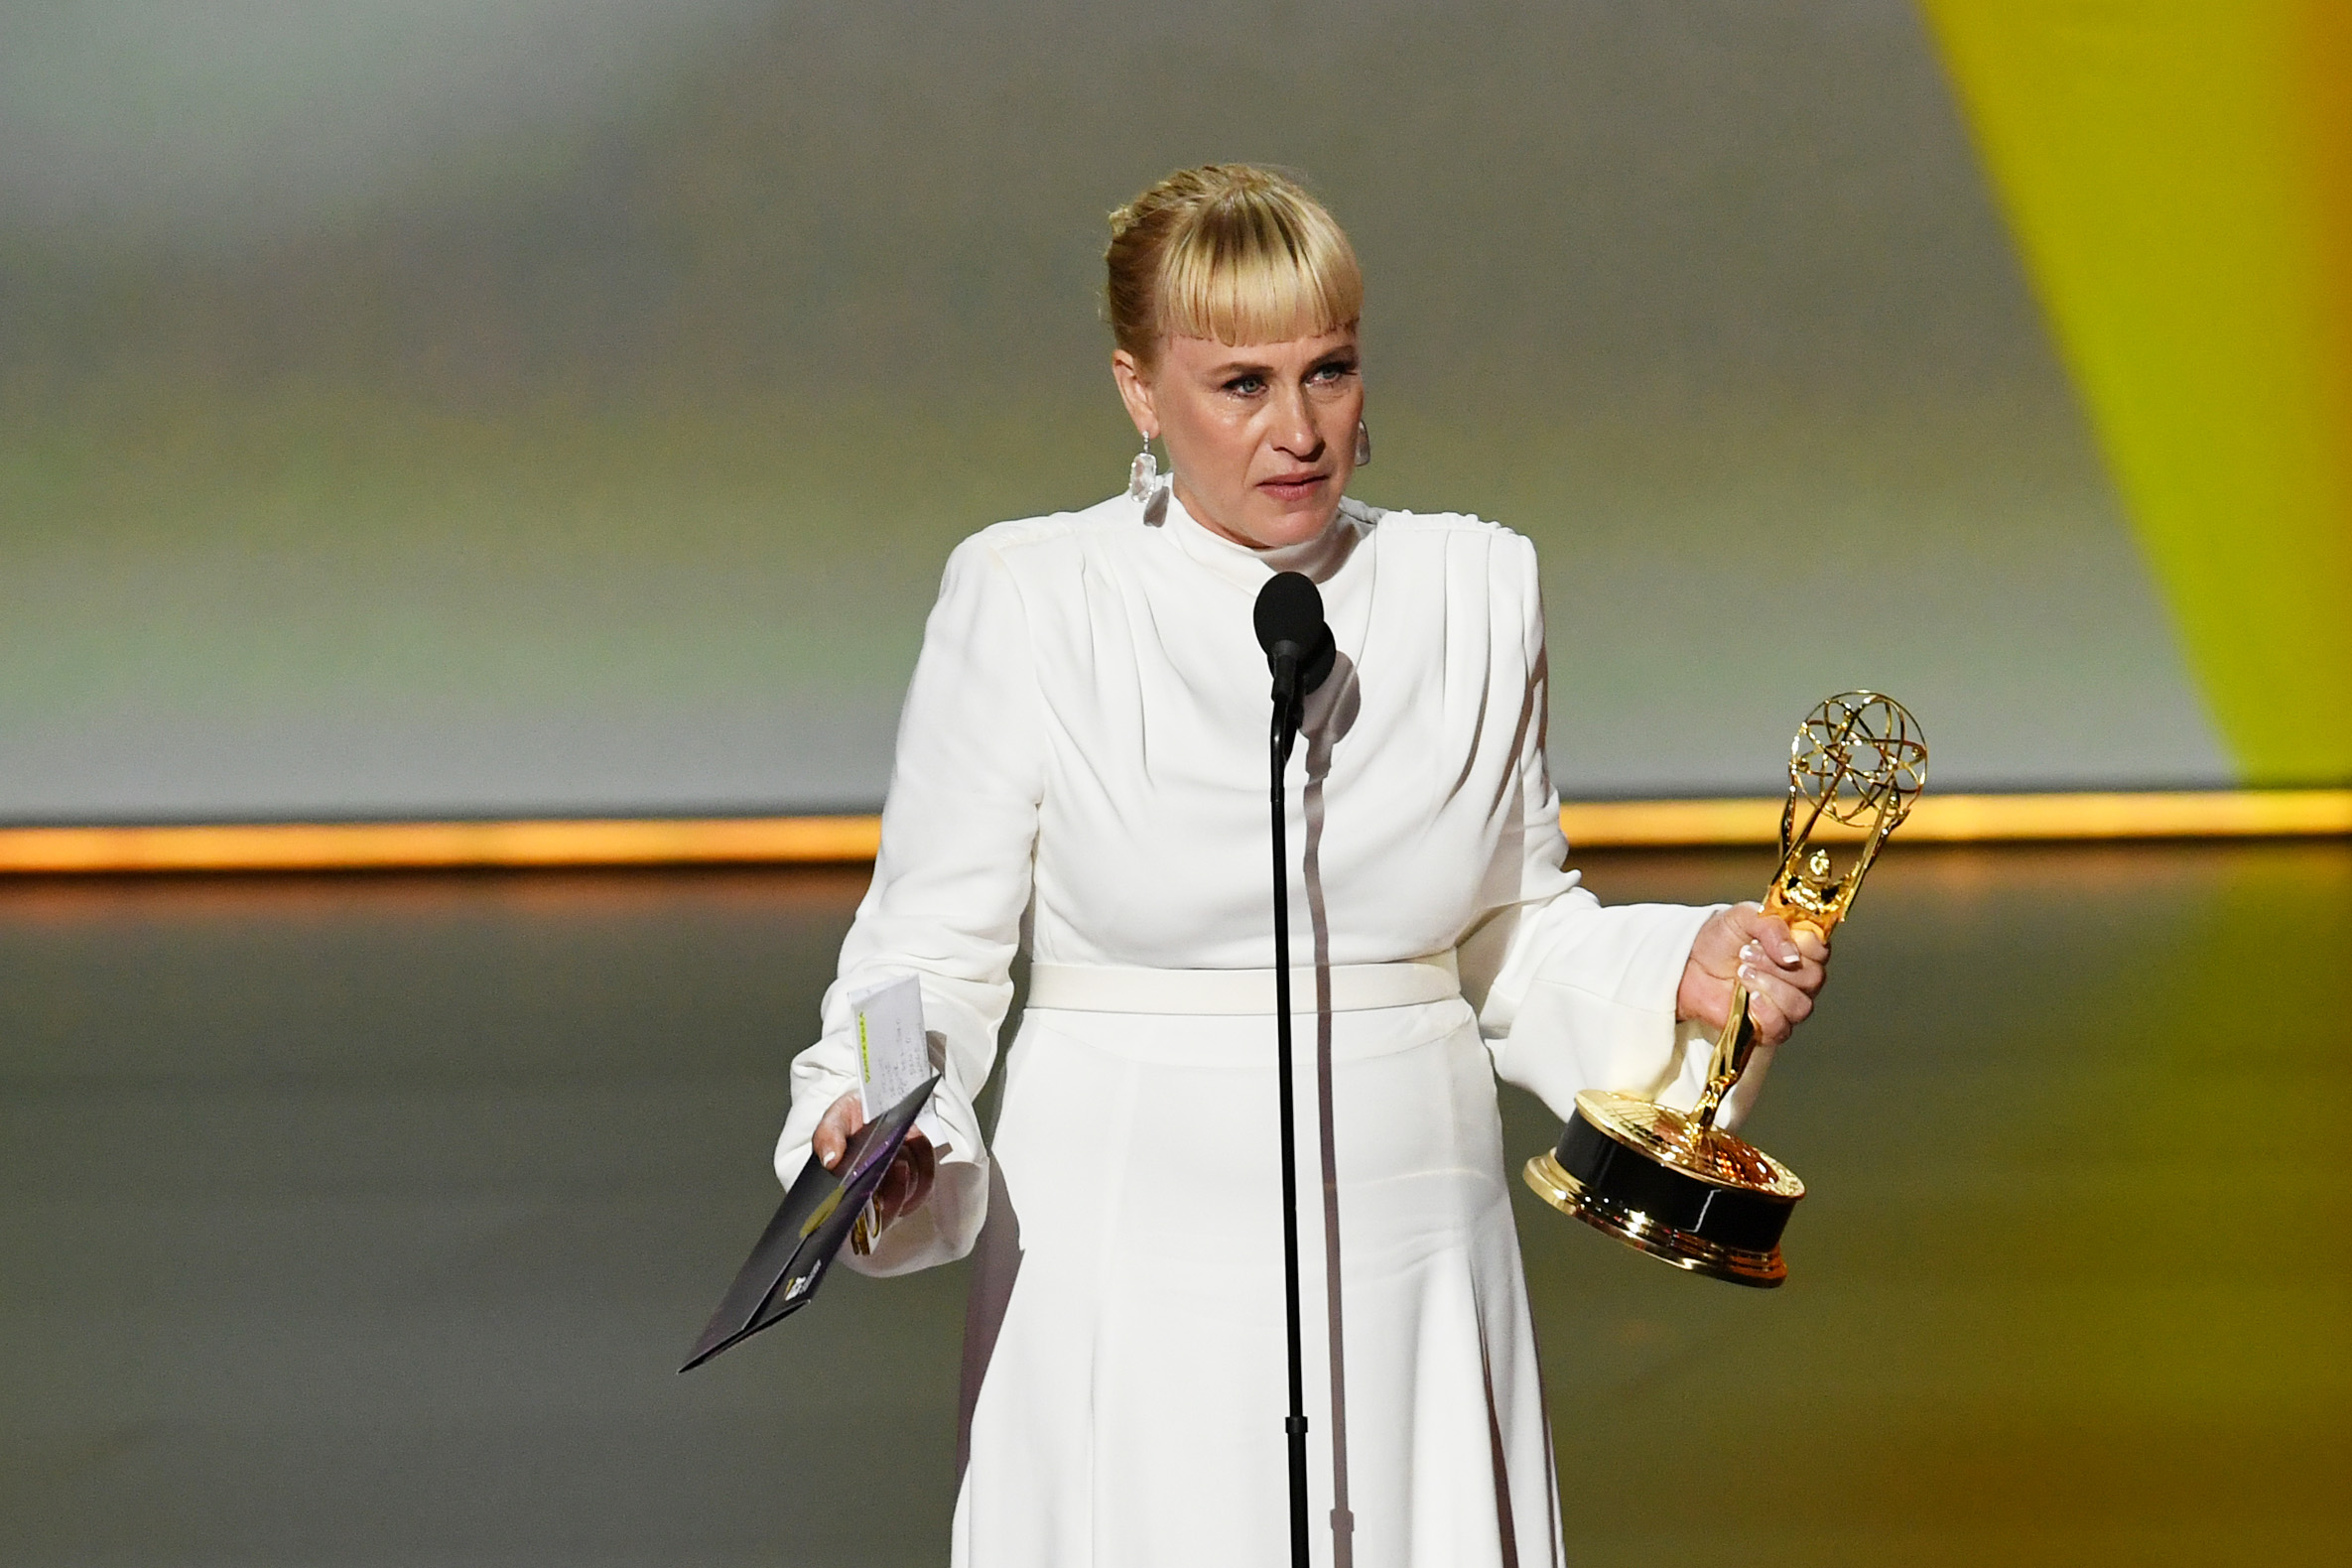 Patricia Arquette speaks out for transgender rights while accepting the Emmy for Supporting Actress in a Limited Series or Movie for 'The Act' during the 71st Emmys.